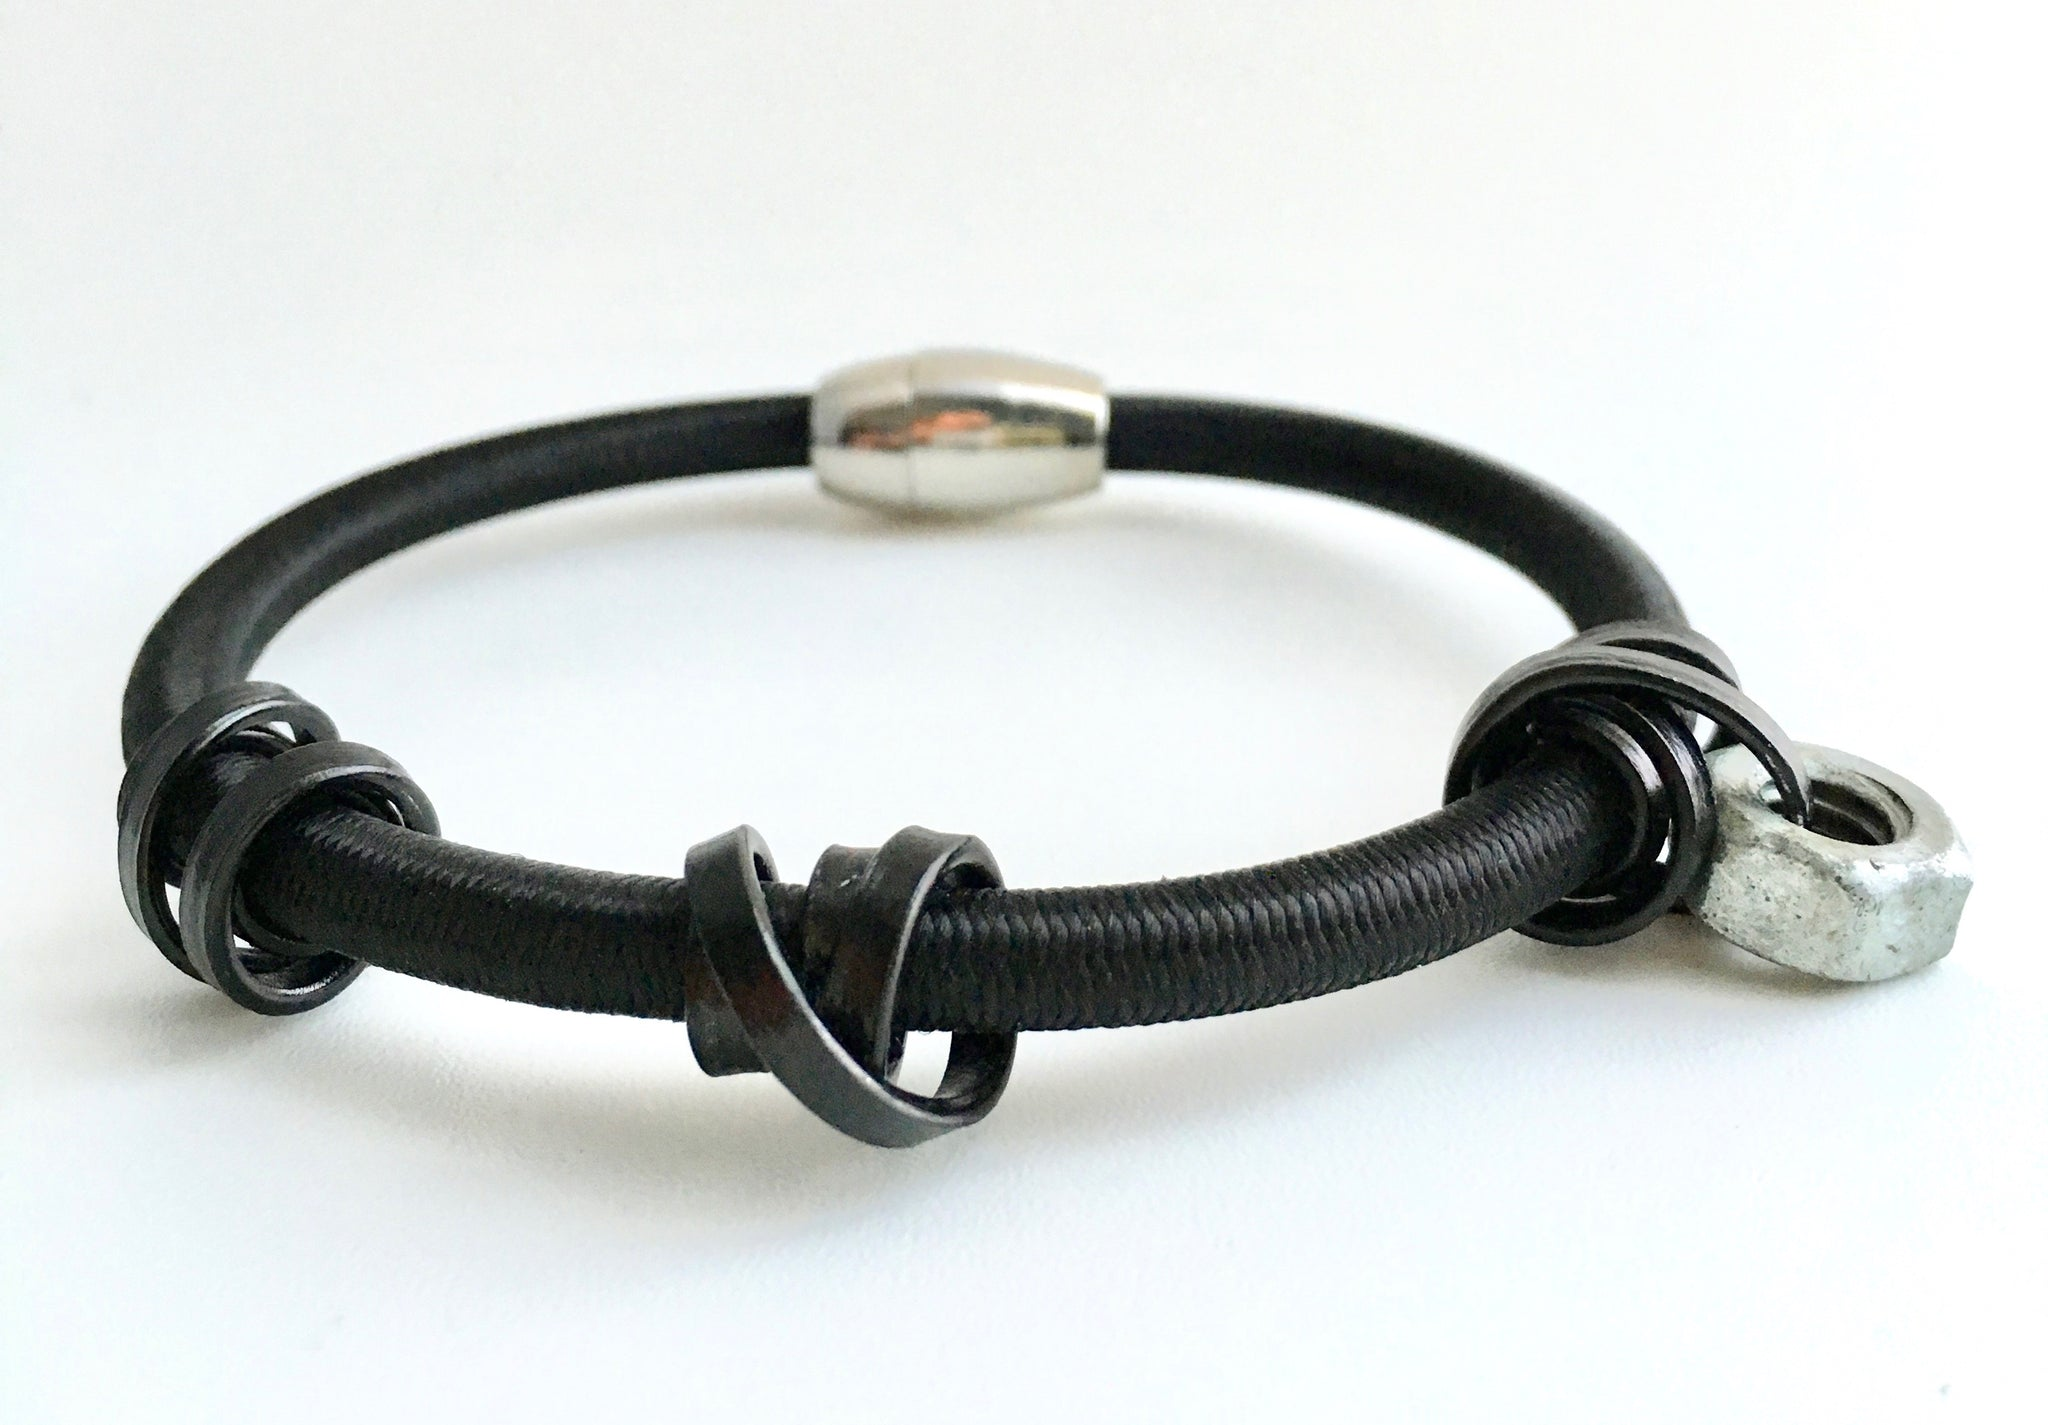 A Loopt bracelet in thin black aluminum coloured wire on heavy cord.